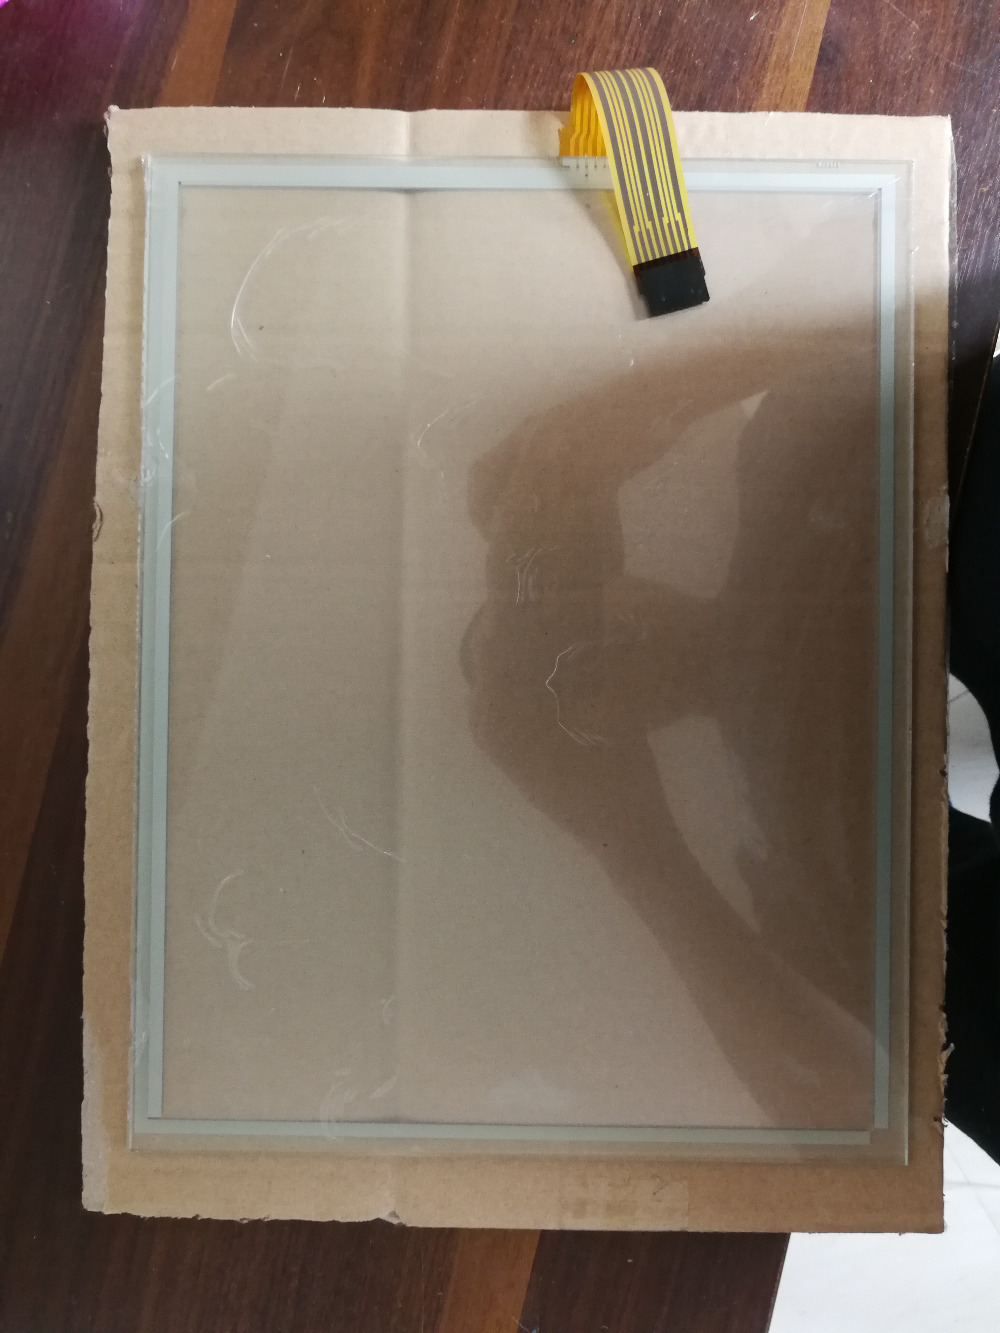 New and original Touch Screen RES-15.0-PL8 New and original Touch Screen RES-15.0-PL8